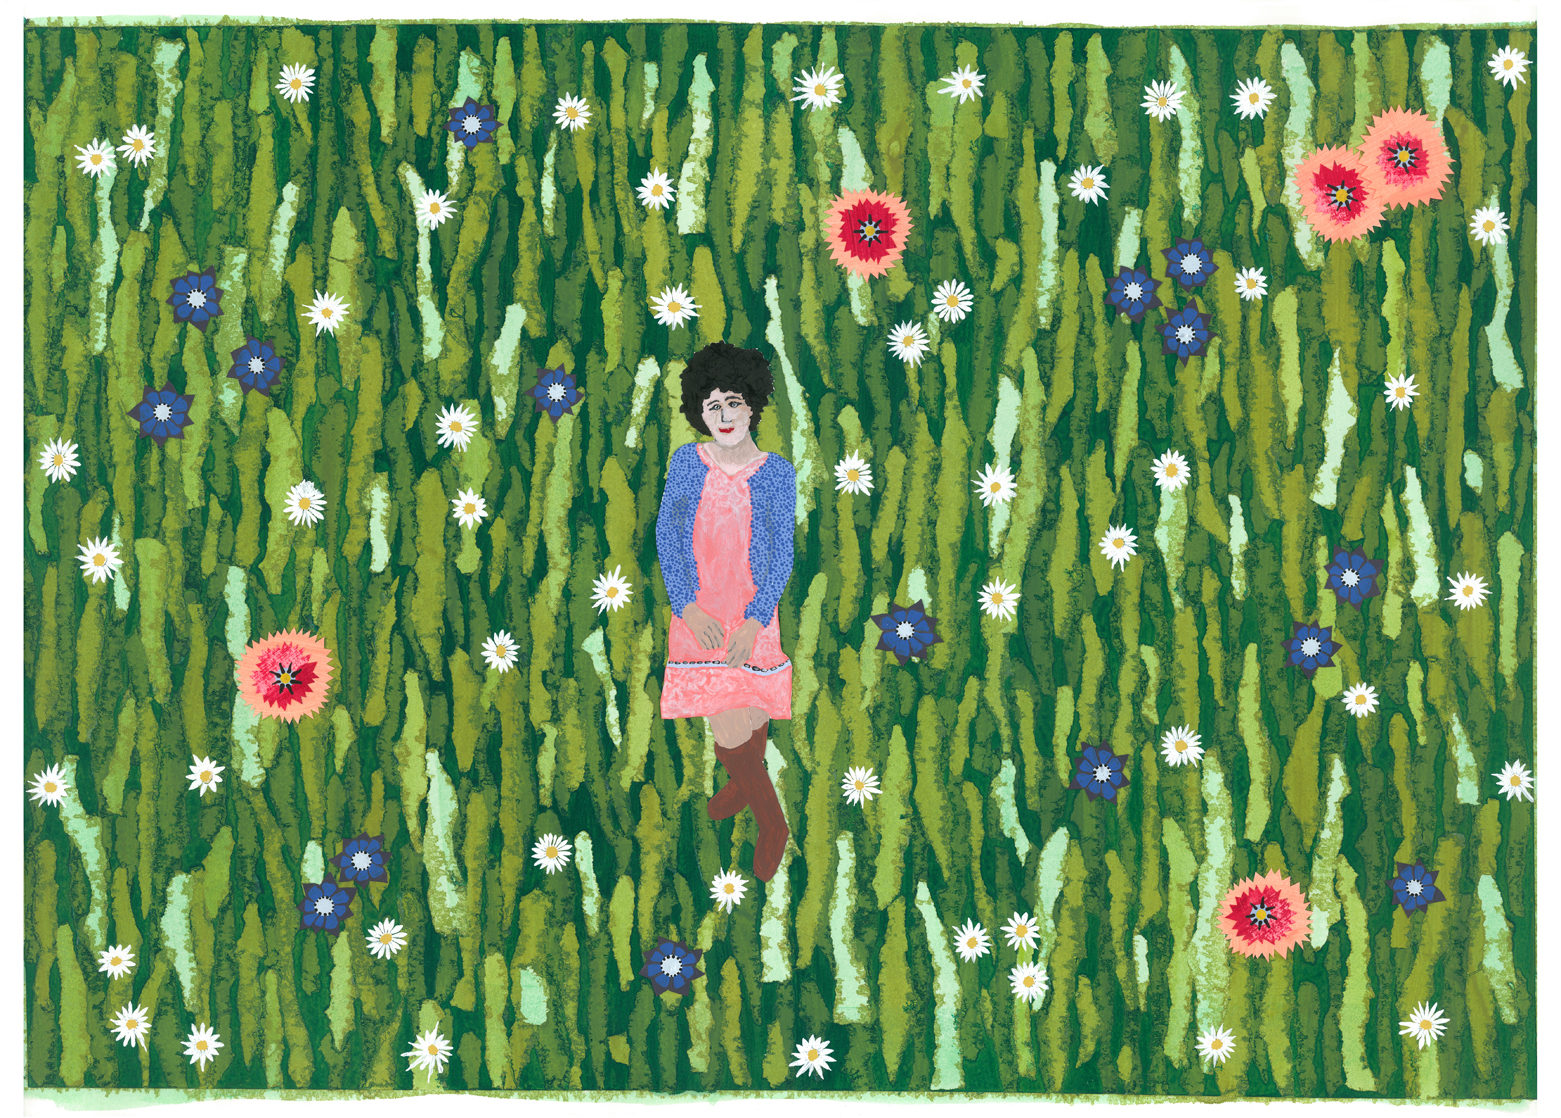 Daisy in a field of flowers